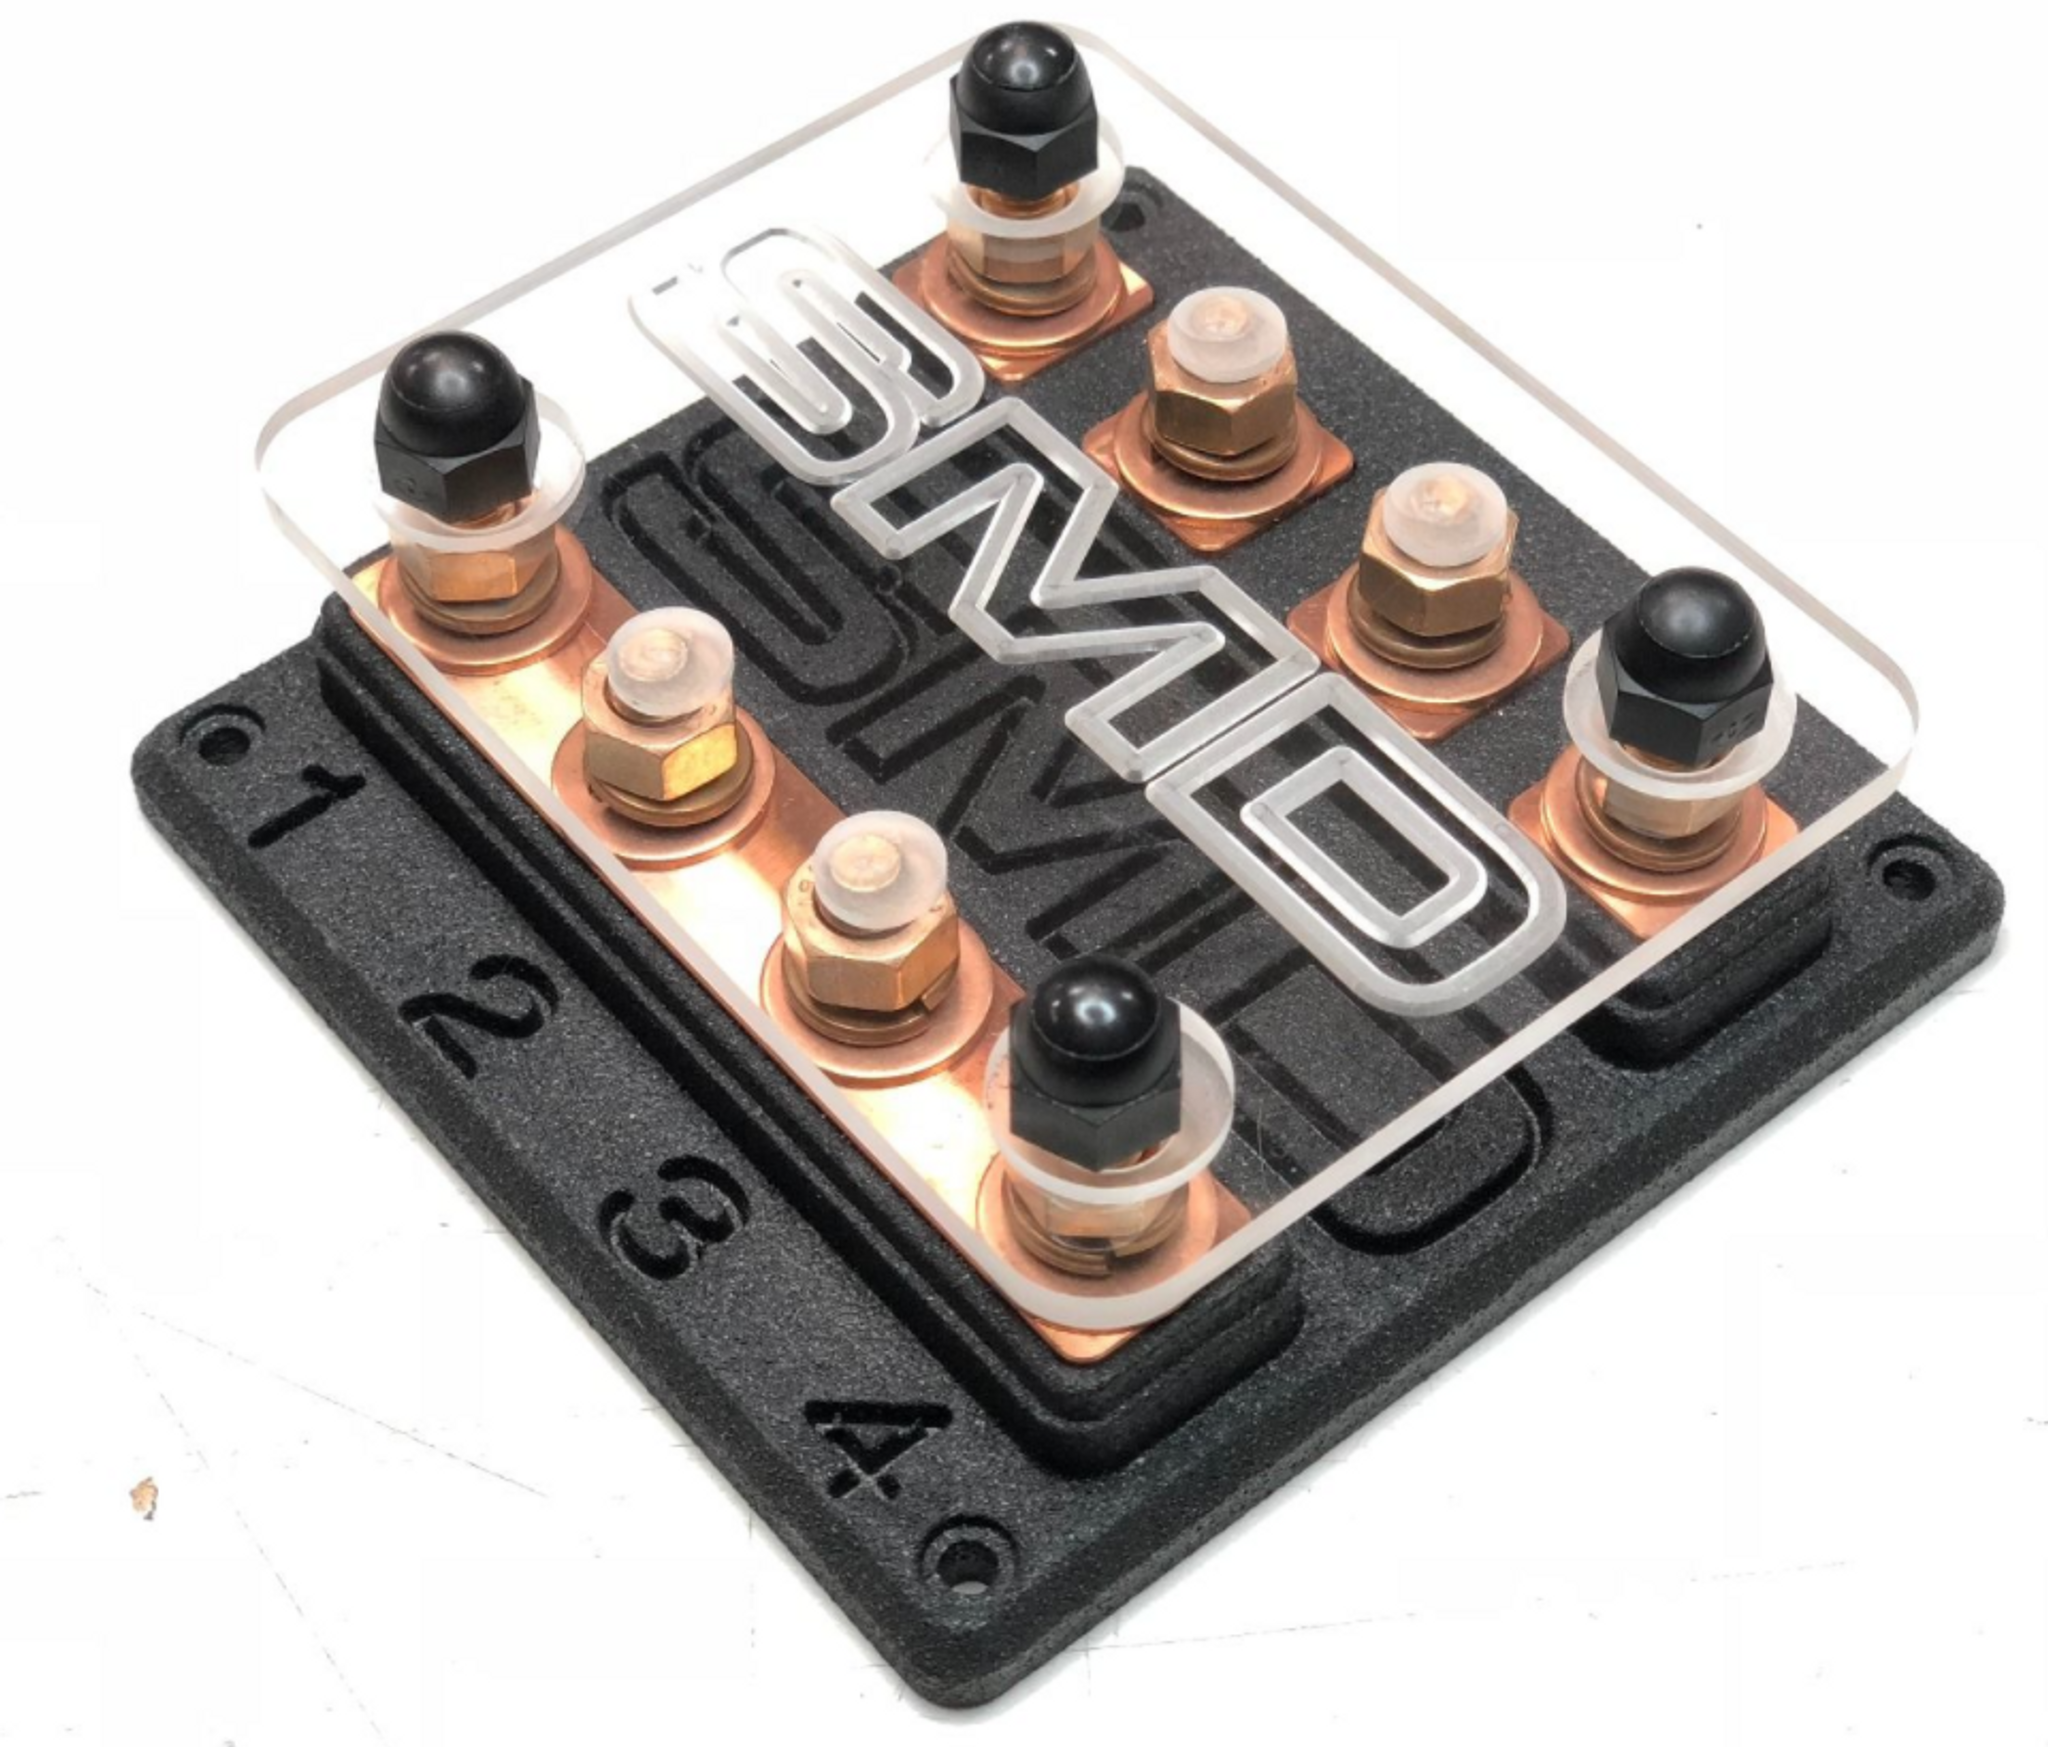 SMD Heavy Duty Quad ANL Fuse Block Copper - Sky High Car AudioSky High Car Audio